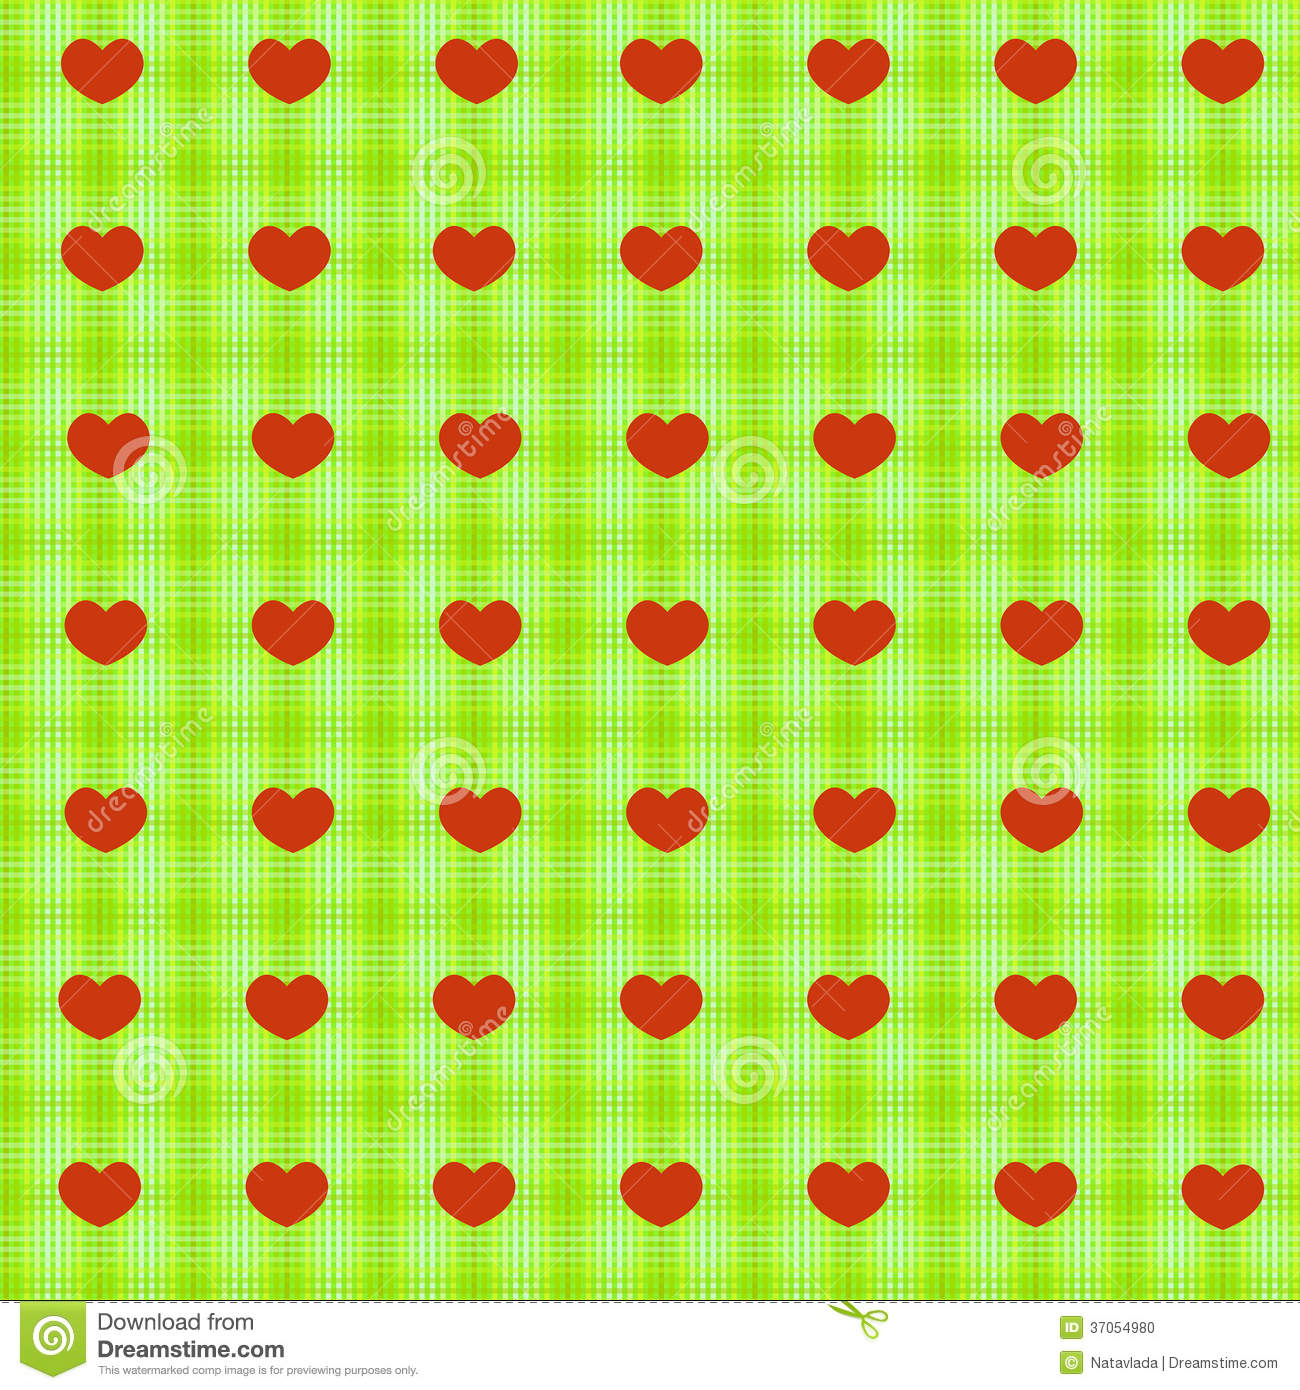 Red Hearts On Green Tablecloth Seamless Background Stock